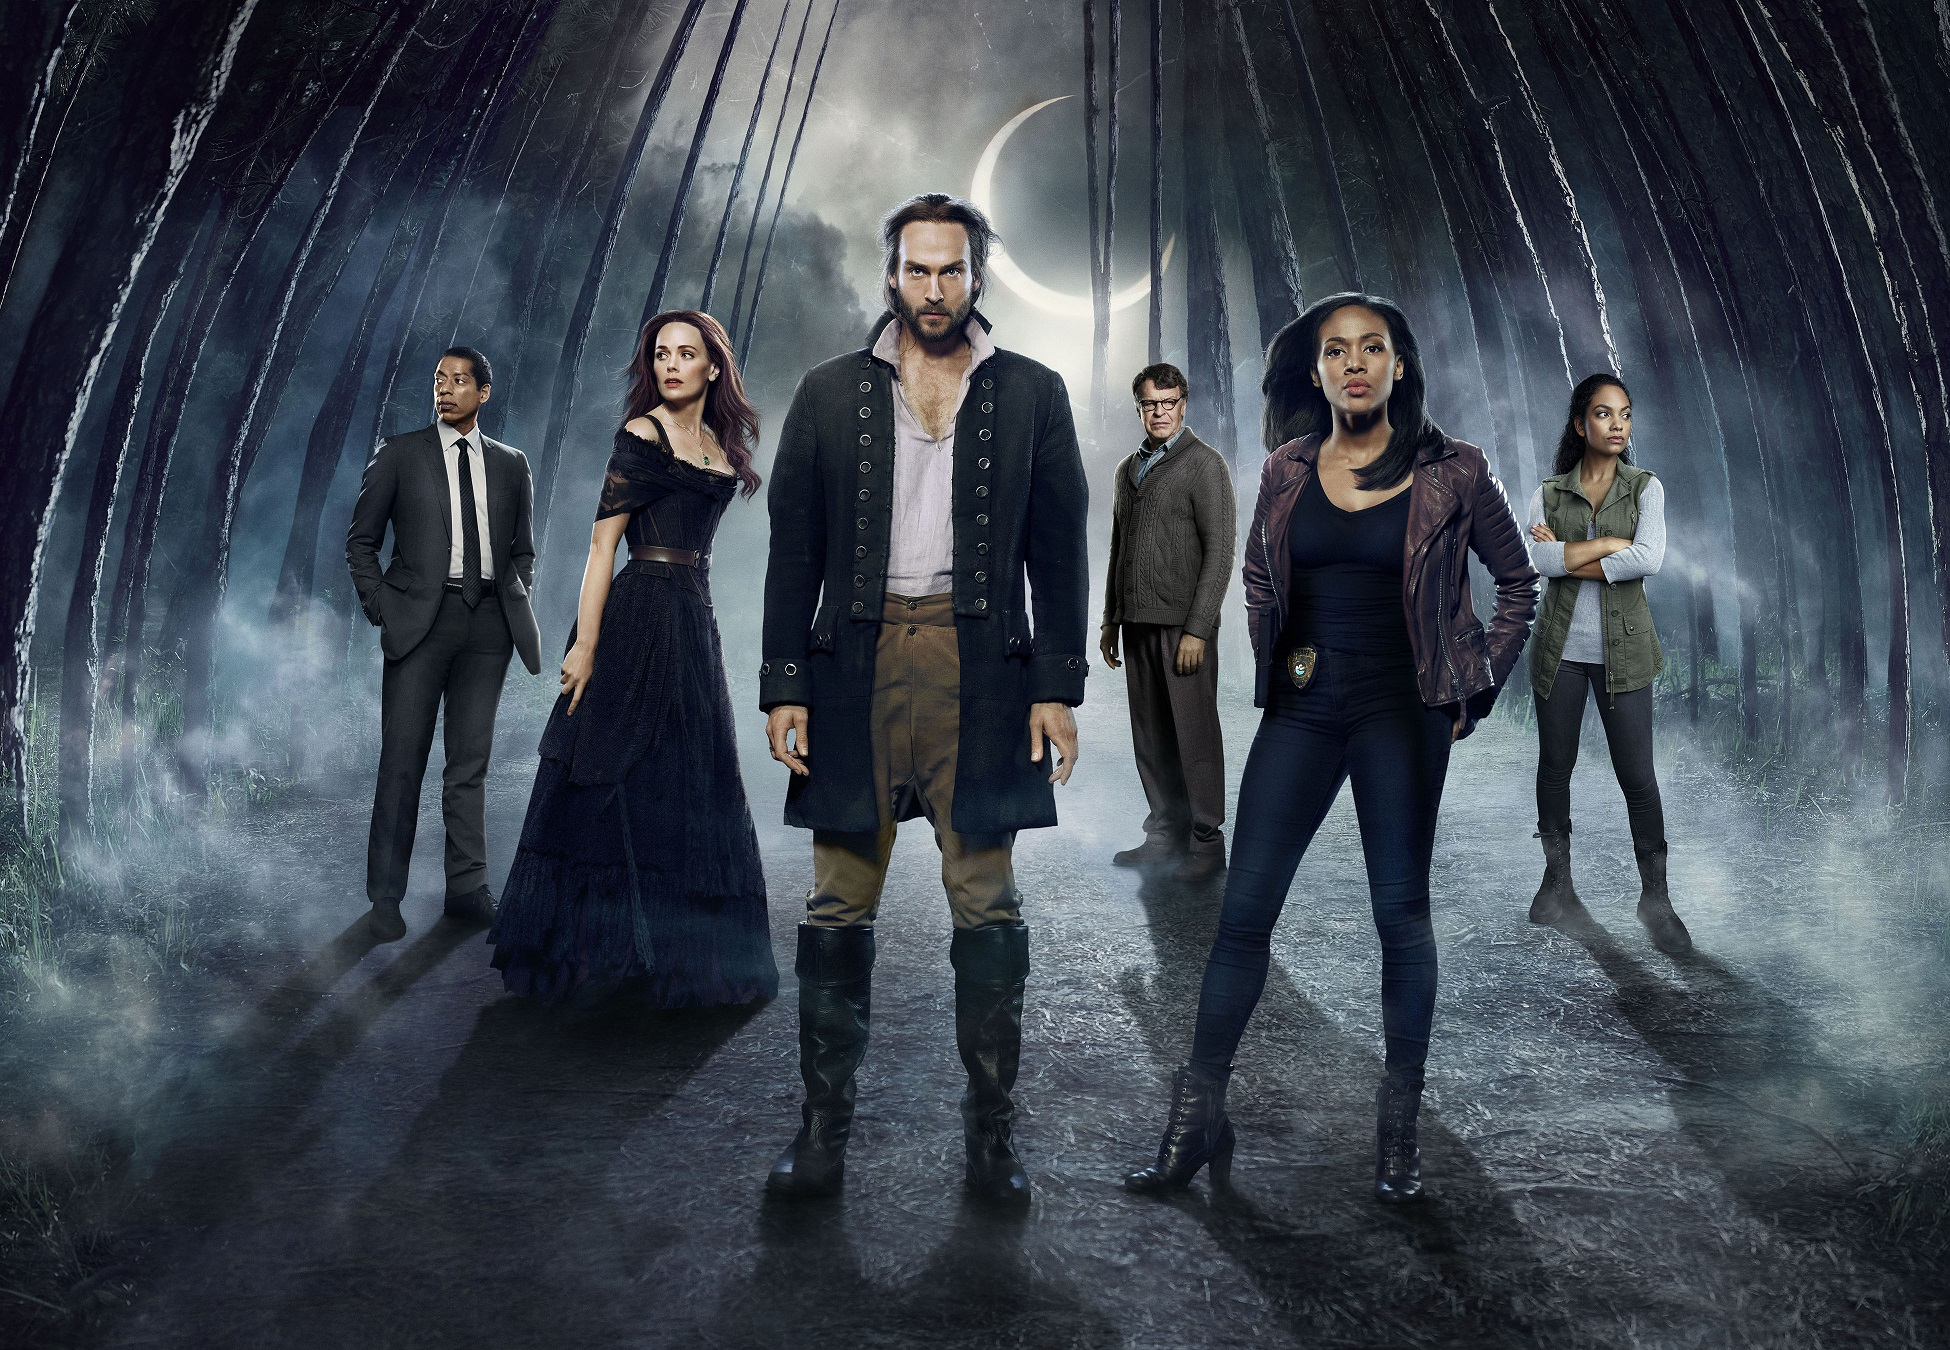 FOX-Sleepy Hollow-The Walking Dead-03FEVEREIRO2015-05